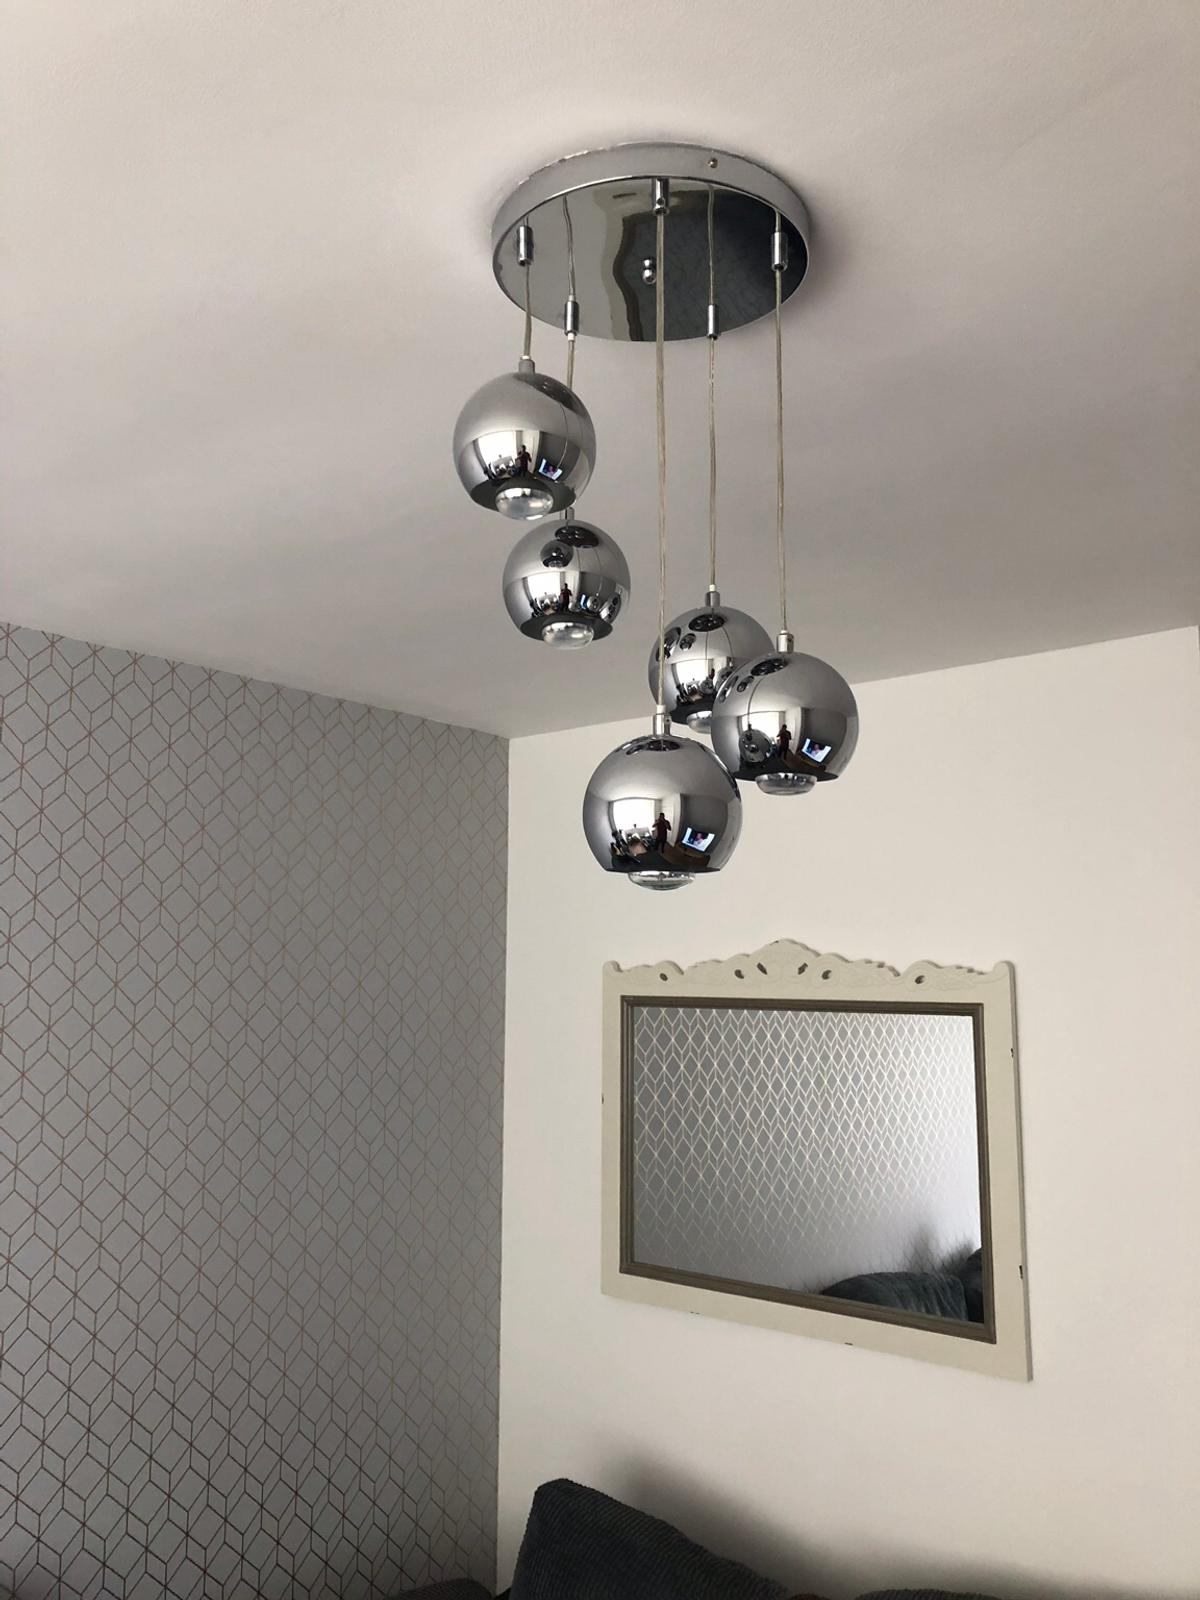 B And Q Light With 5 Working Bulbs In